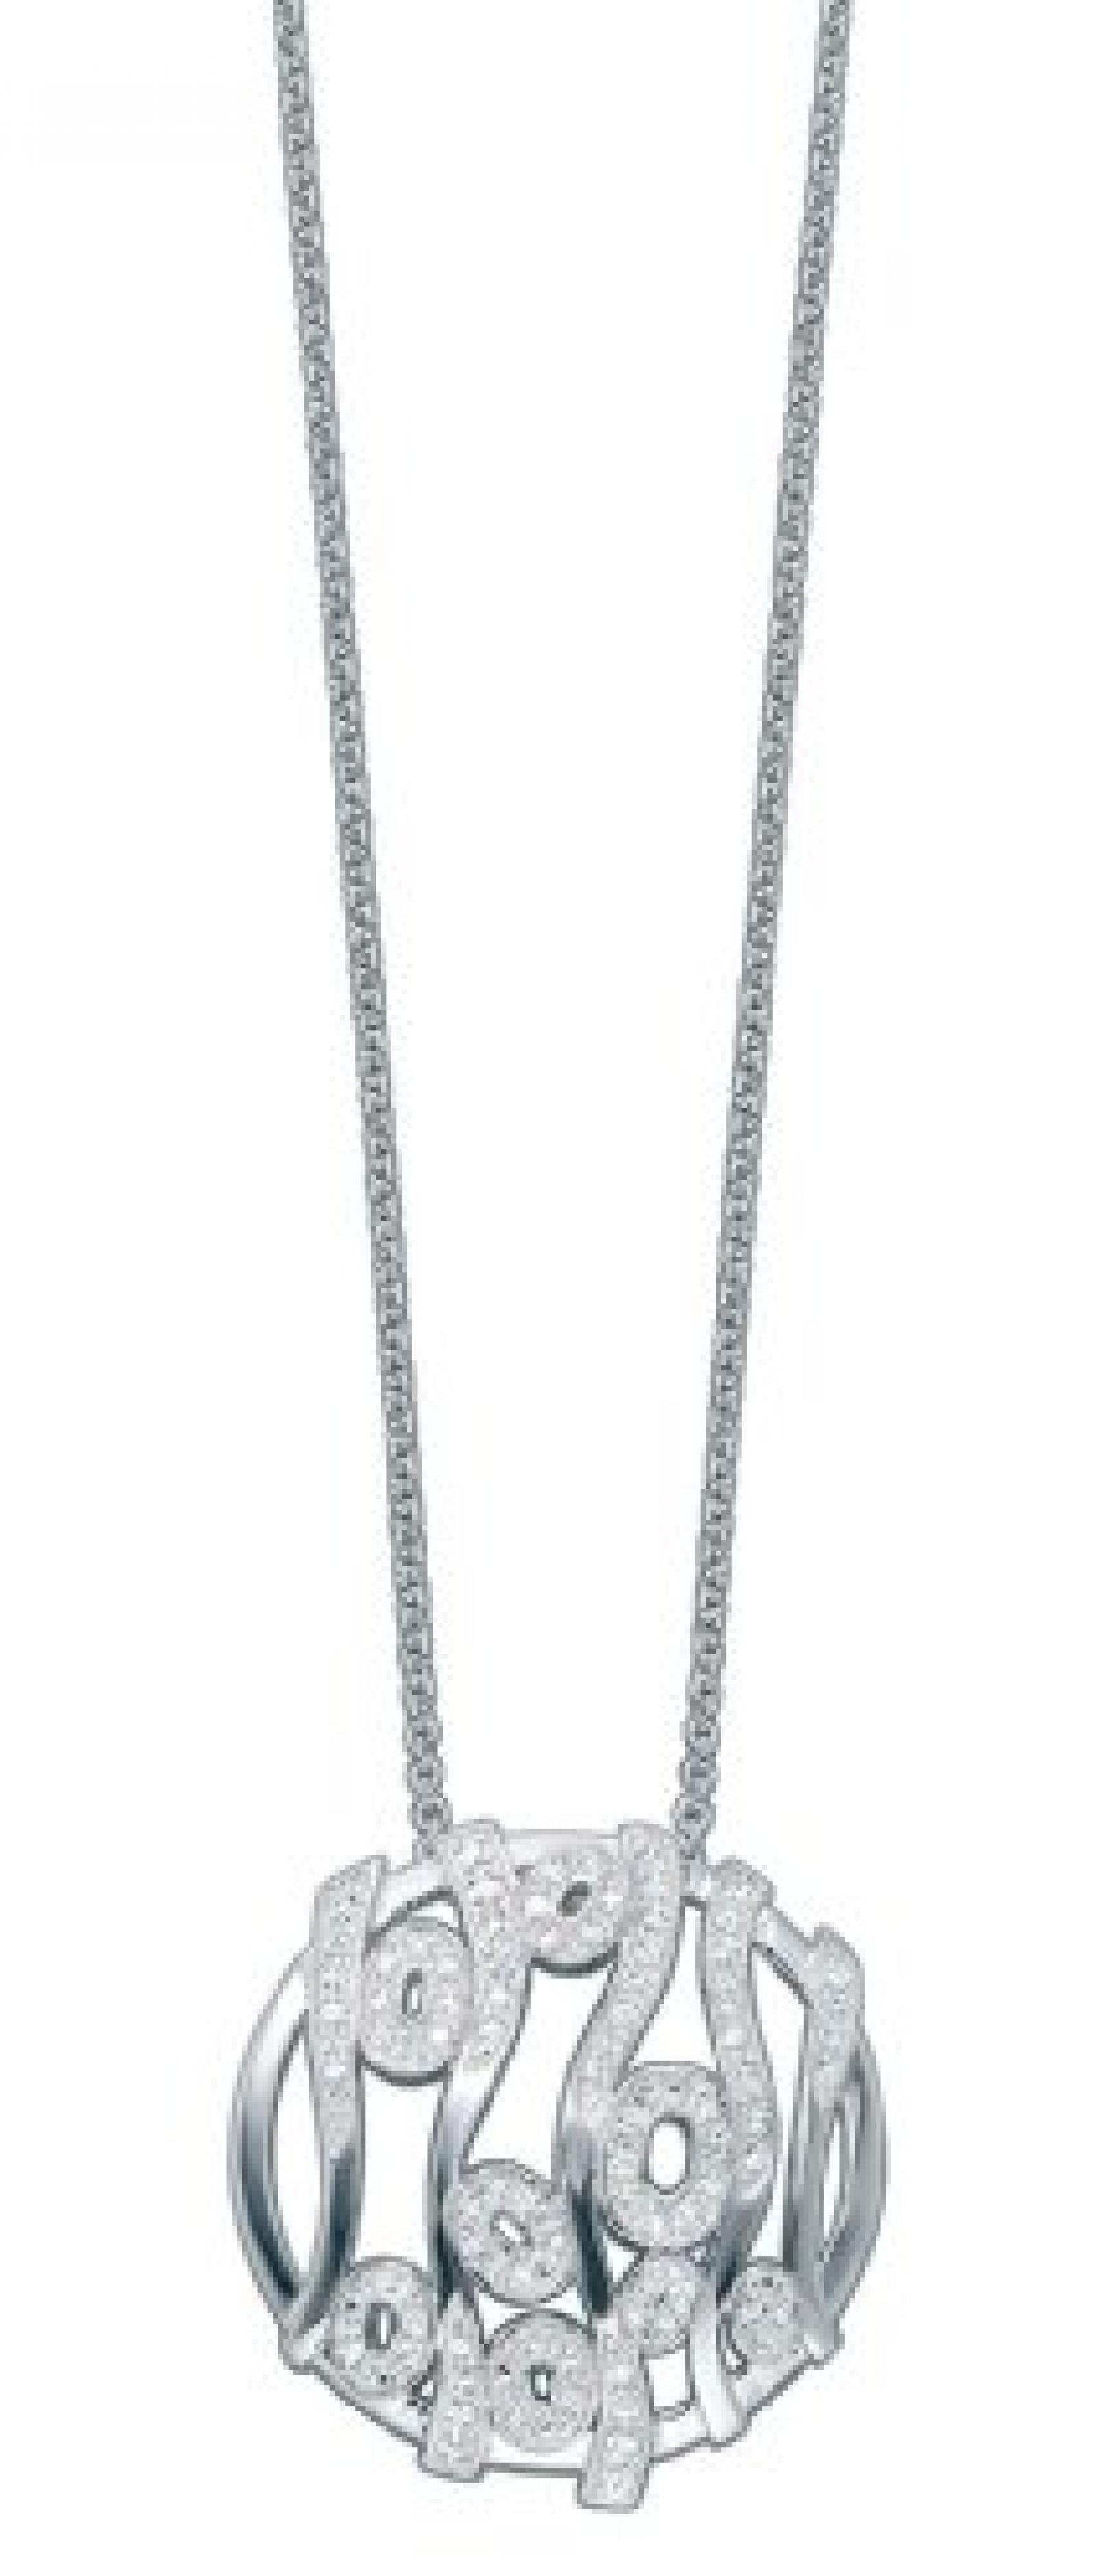 Pierre Cardin  Damen-Collier Sterling-Silber 925 45cm 4413369